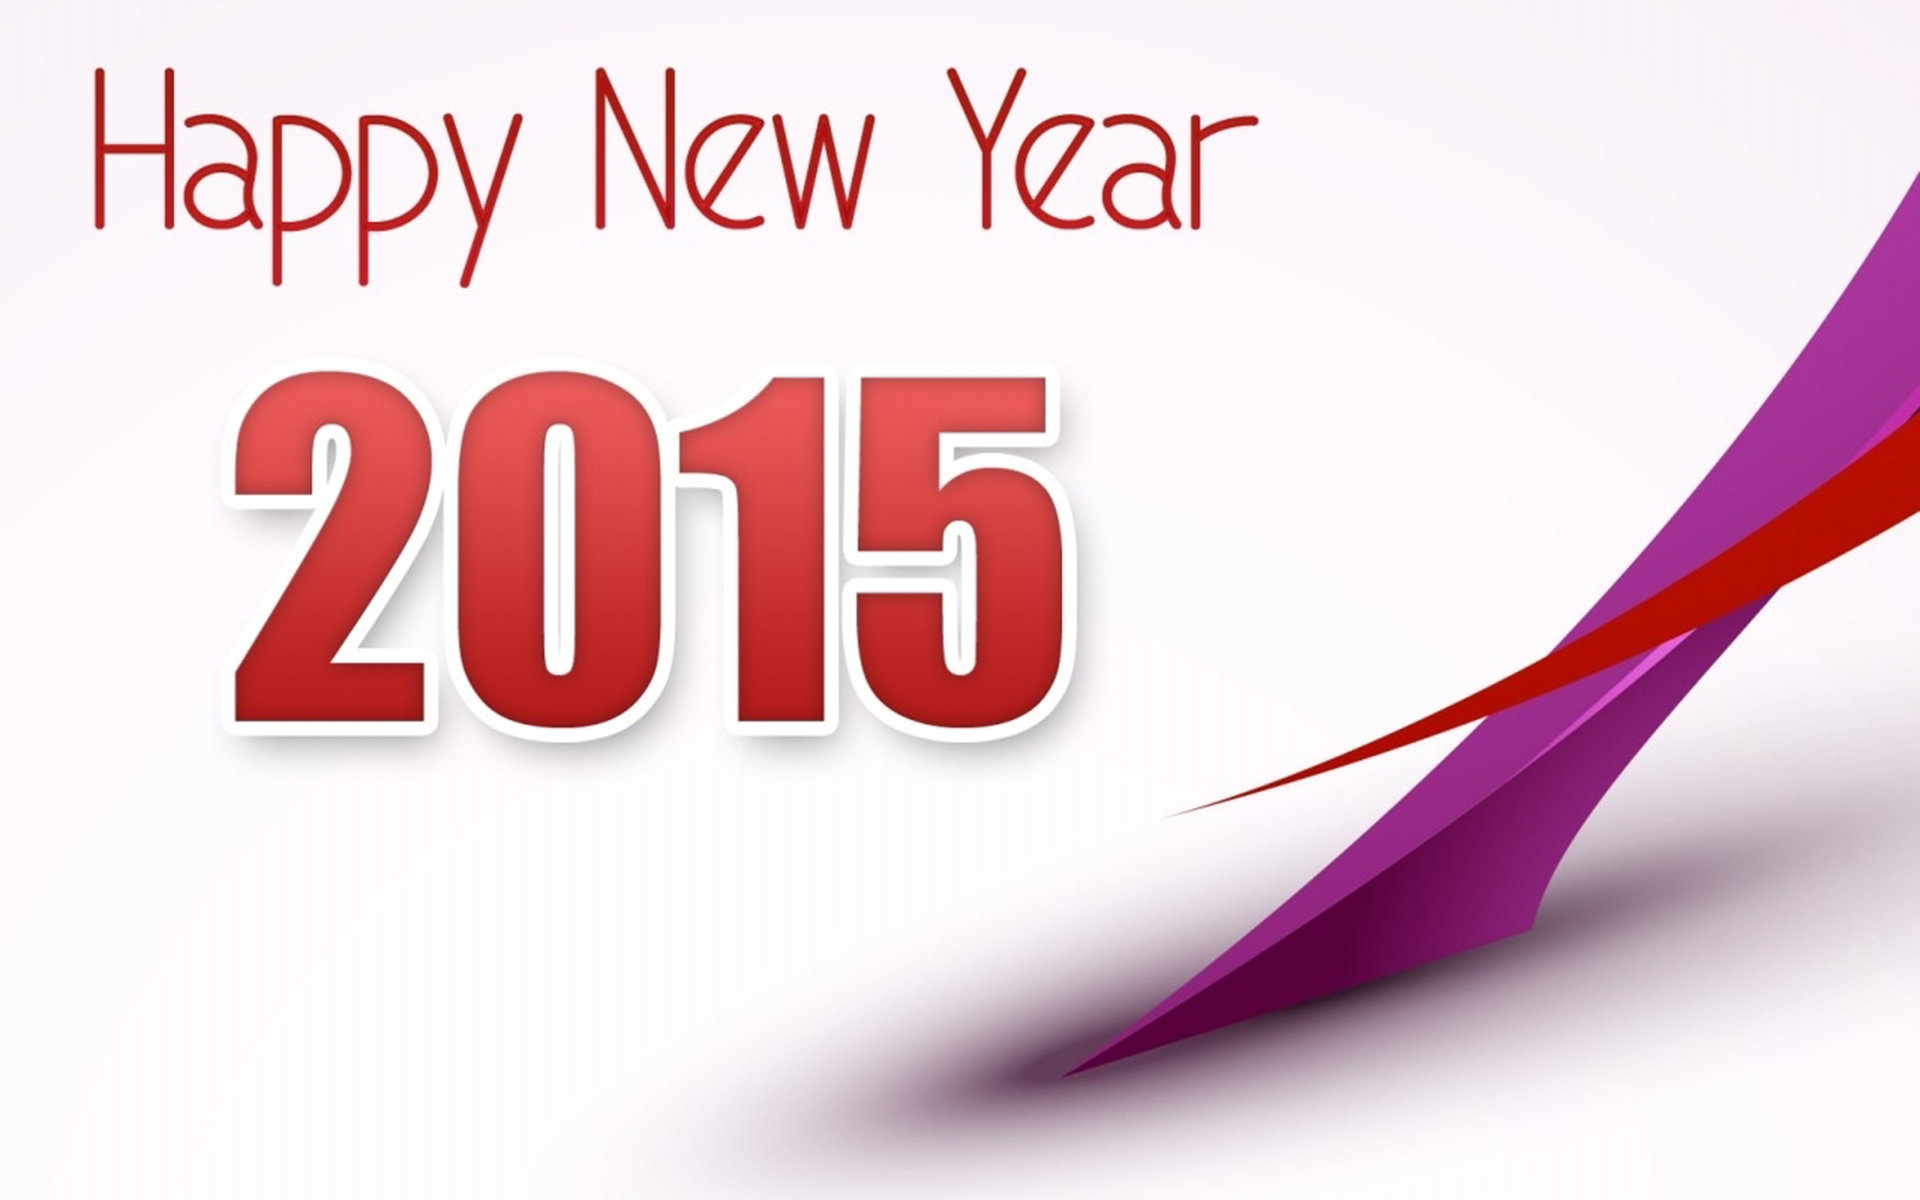 Awesome New Year 2015 free wallpaper ID:156221 for hd 1920x1200 PC